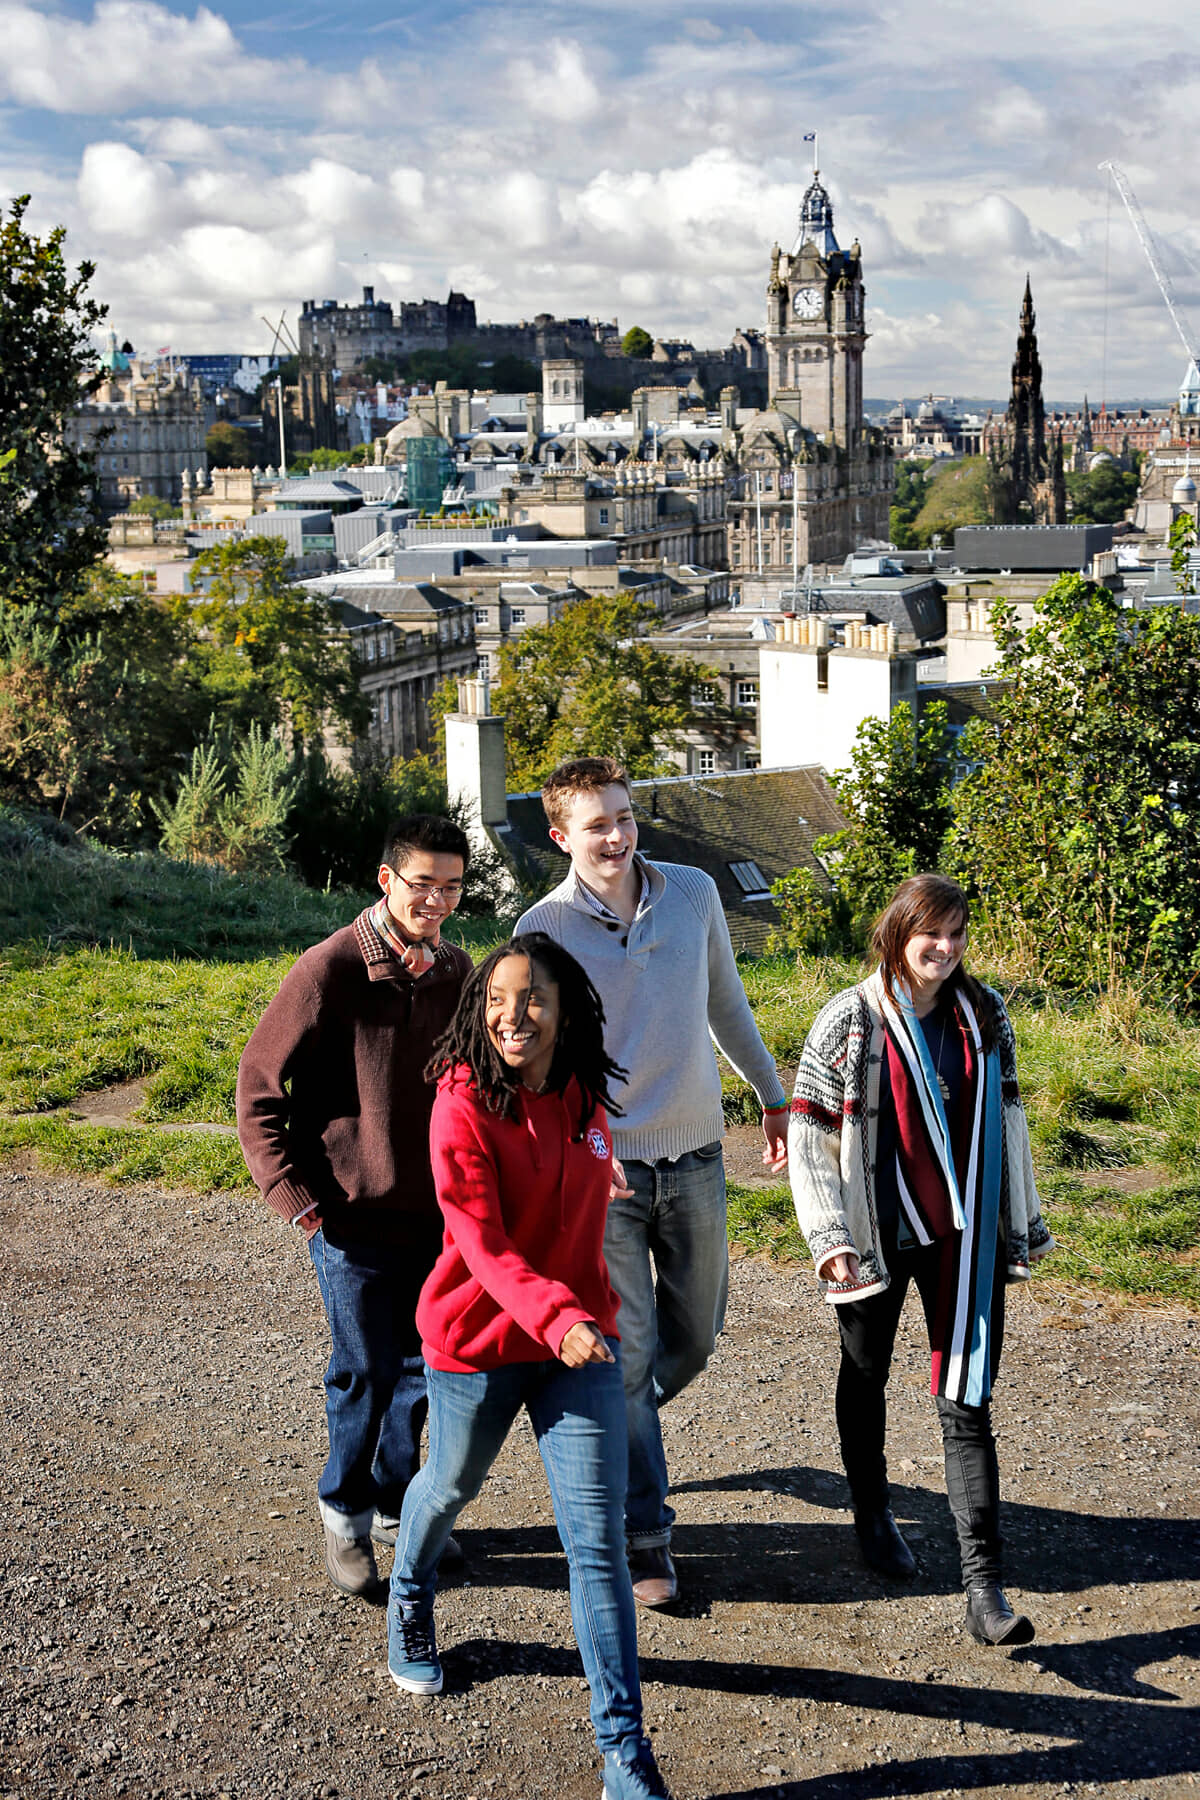 Students on Calton Hill - Paul Dodds